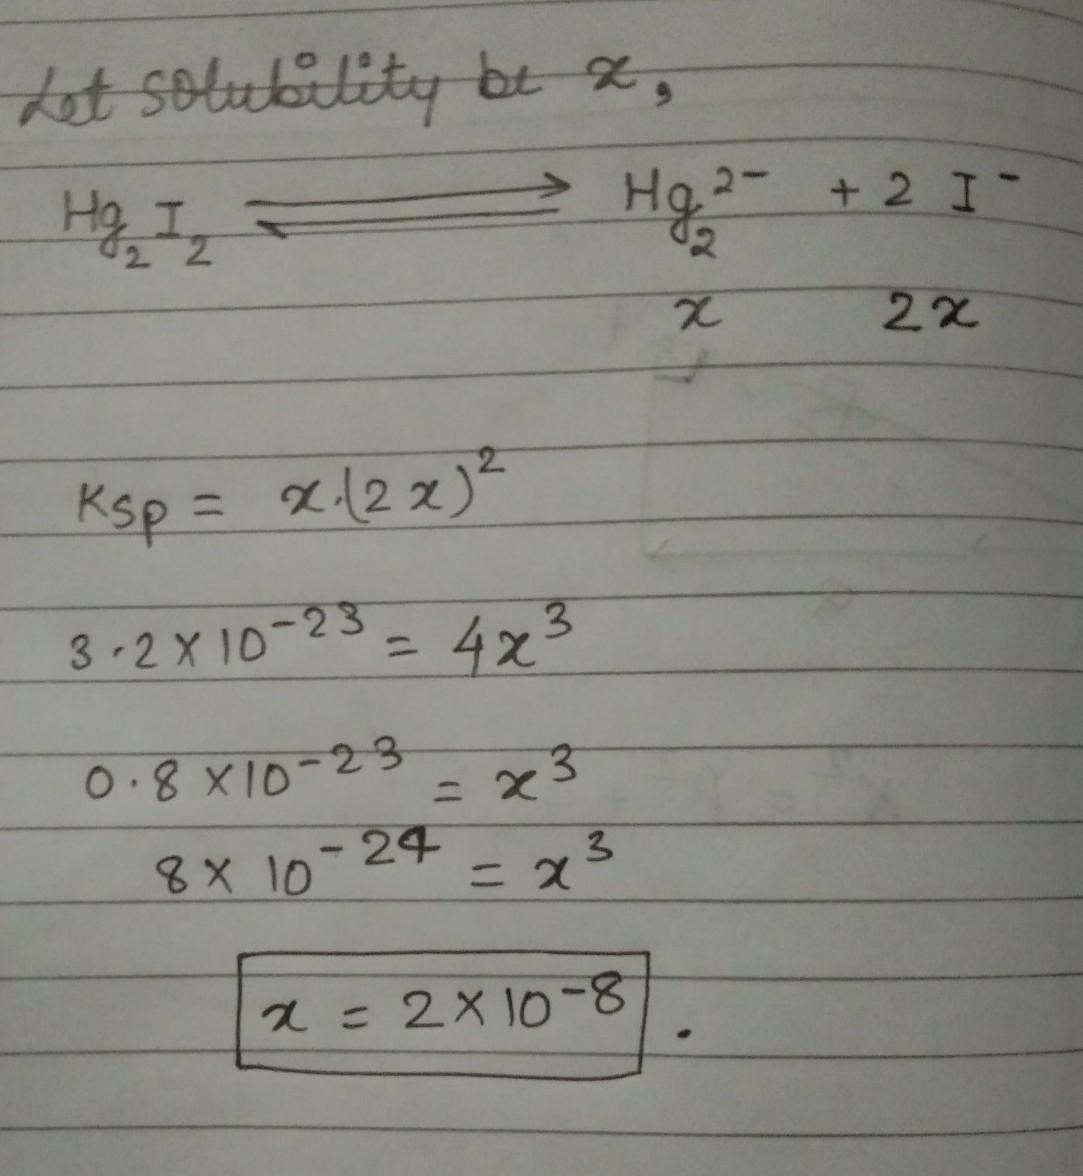 If Ksp Of Hg2i2 Is 3 2 P 10 23 Then Its Solubility Is